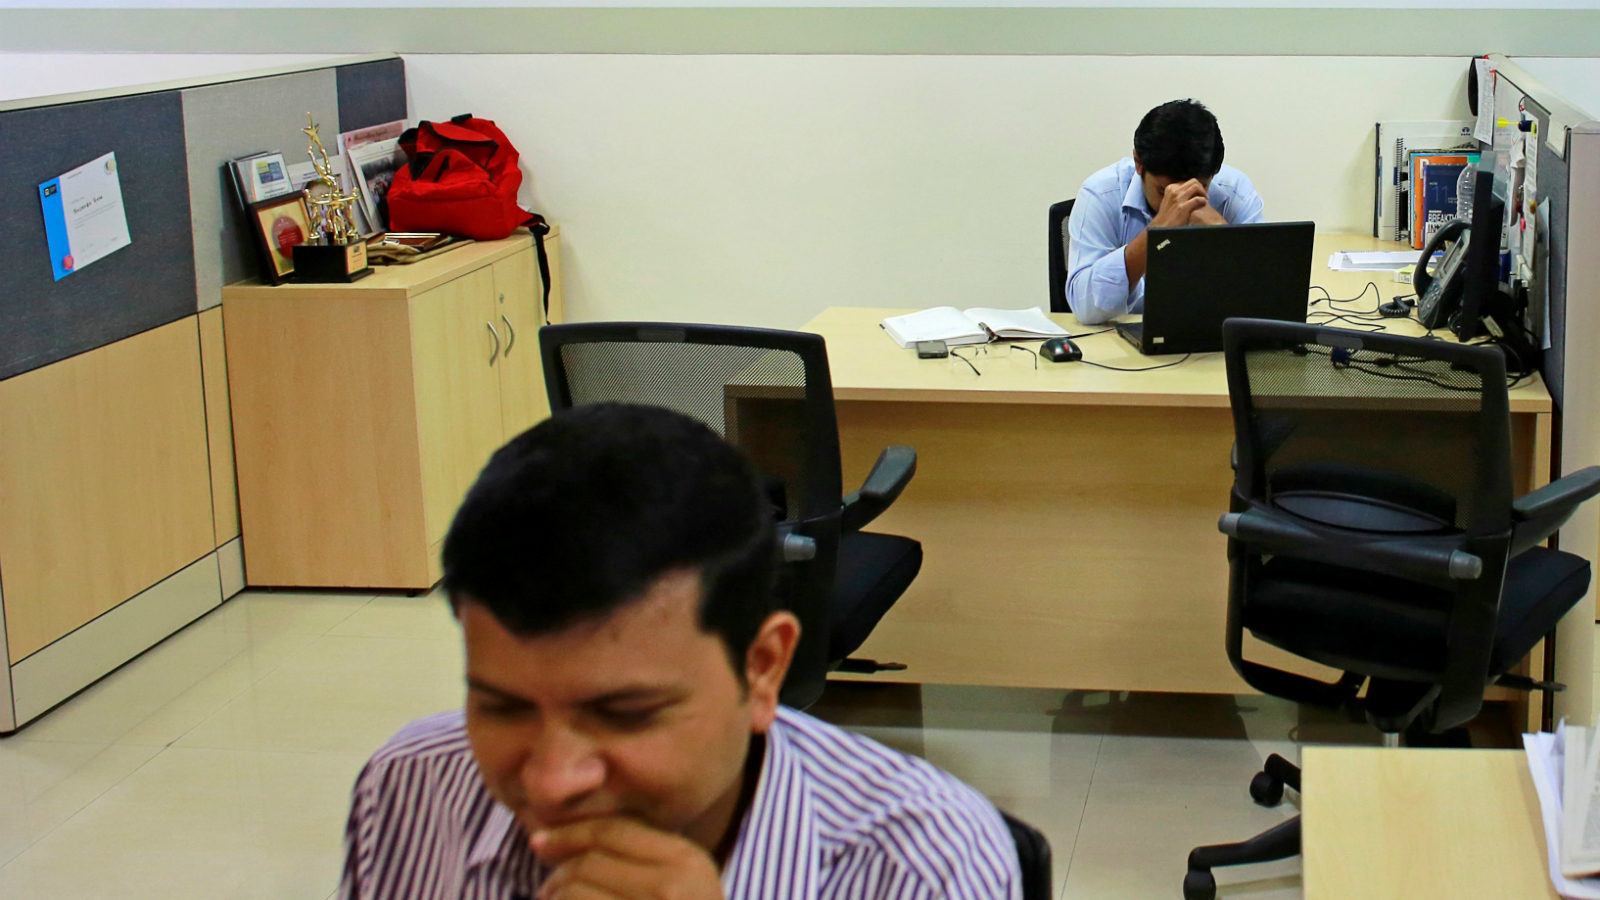 Employees of Tata Consultancy Services (TCS) work inside the company headquarters in Mumbai March 14, 2013. REUTERS/Danish Siddiqui/File Photo